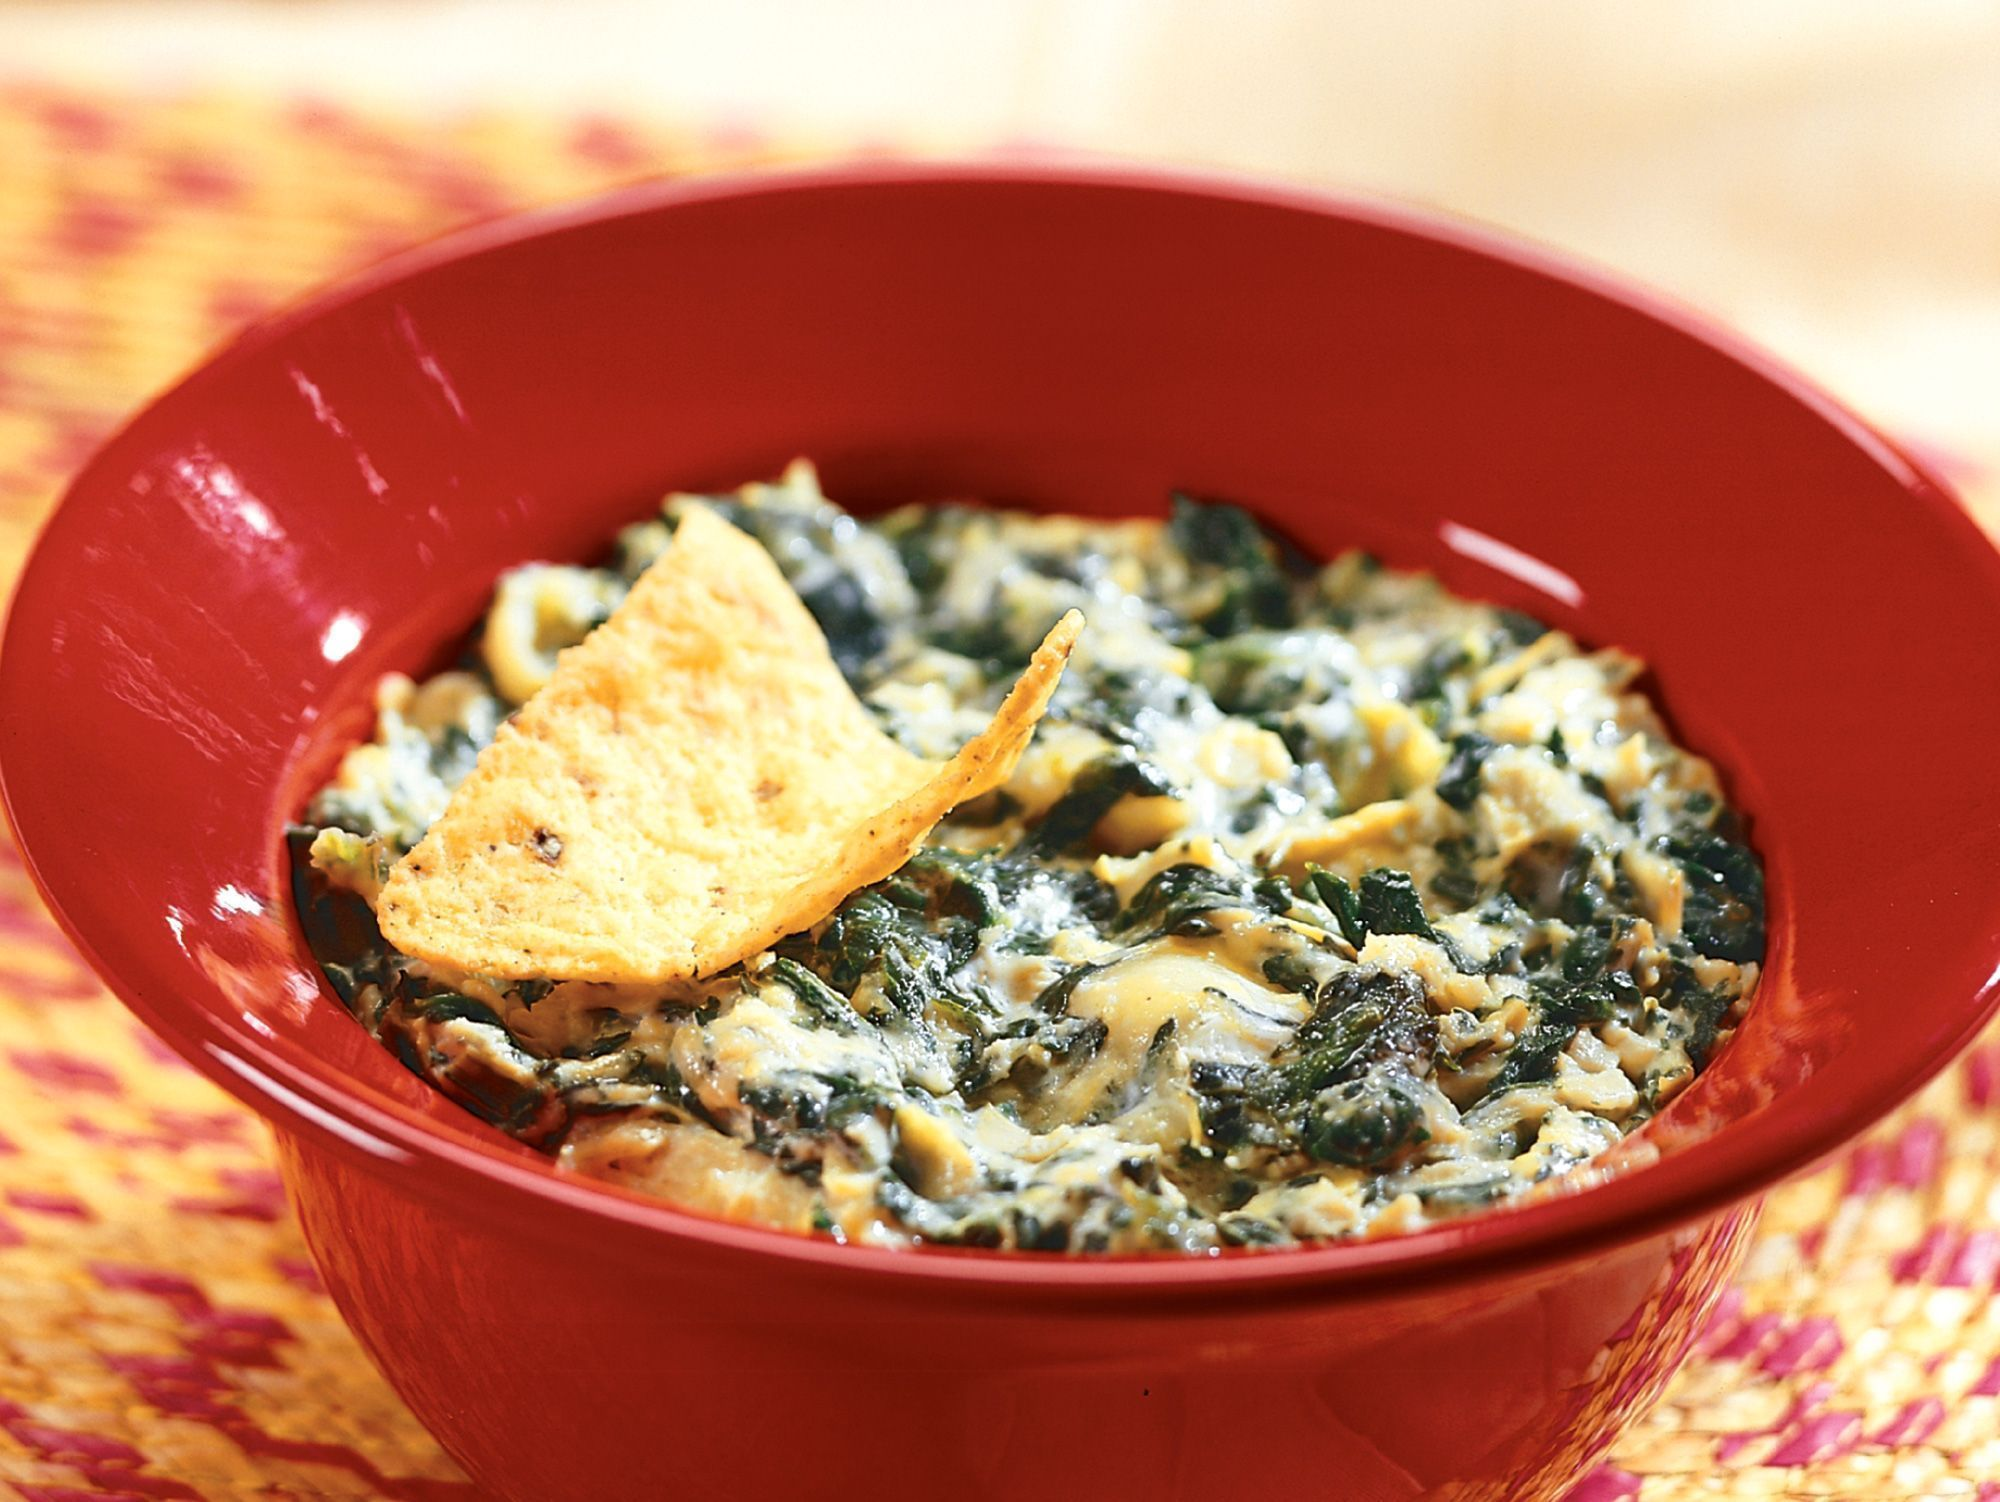 Make This Crowd-Pleasing Dip In Your Crockpot #crockpotspinachandartichokedip Crockpot Spinach and Artichoke Dip Recipe: Let your crockpot do the work on this popular spinach and artichoke dip. It goes together in a matter of minutes and disappears into appreciative mouths. #crockpotspinachandartichokedip Make This Crowd-Pleasing Dip In Your Crockpot #crockpotspinachandartichokedip Crockpot Spinach and Artichoke Dip Recipe: Let your crockpot do the work on this popular spinach and artichoke dip. #crockpotspinachandartichokedip